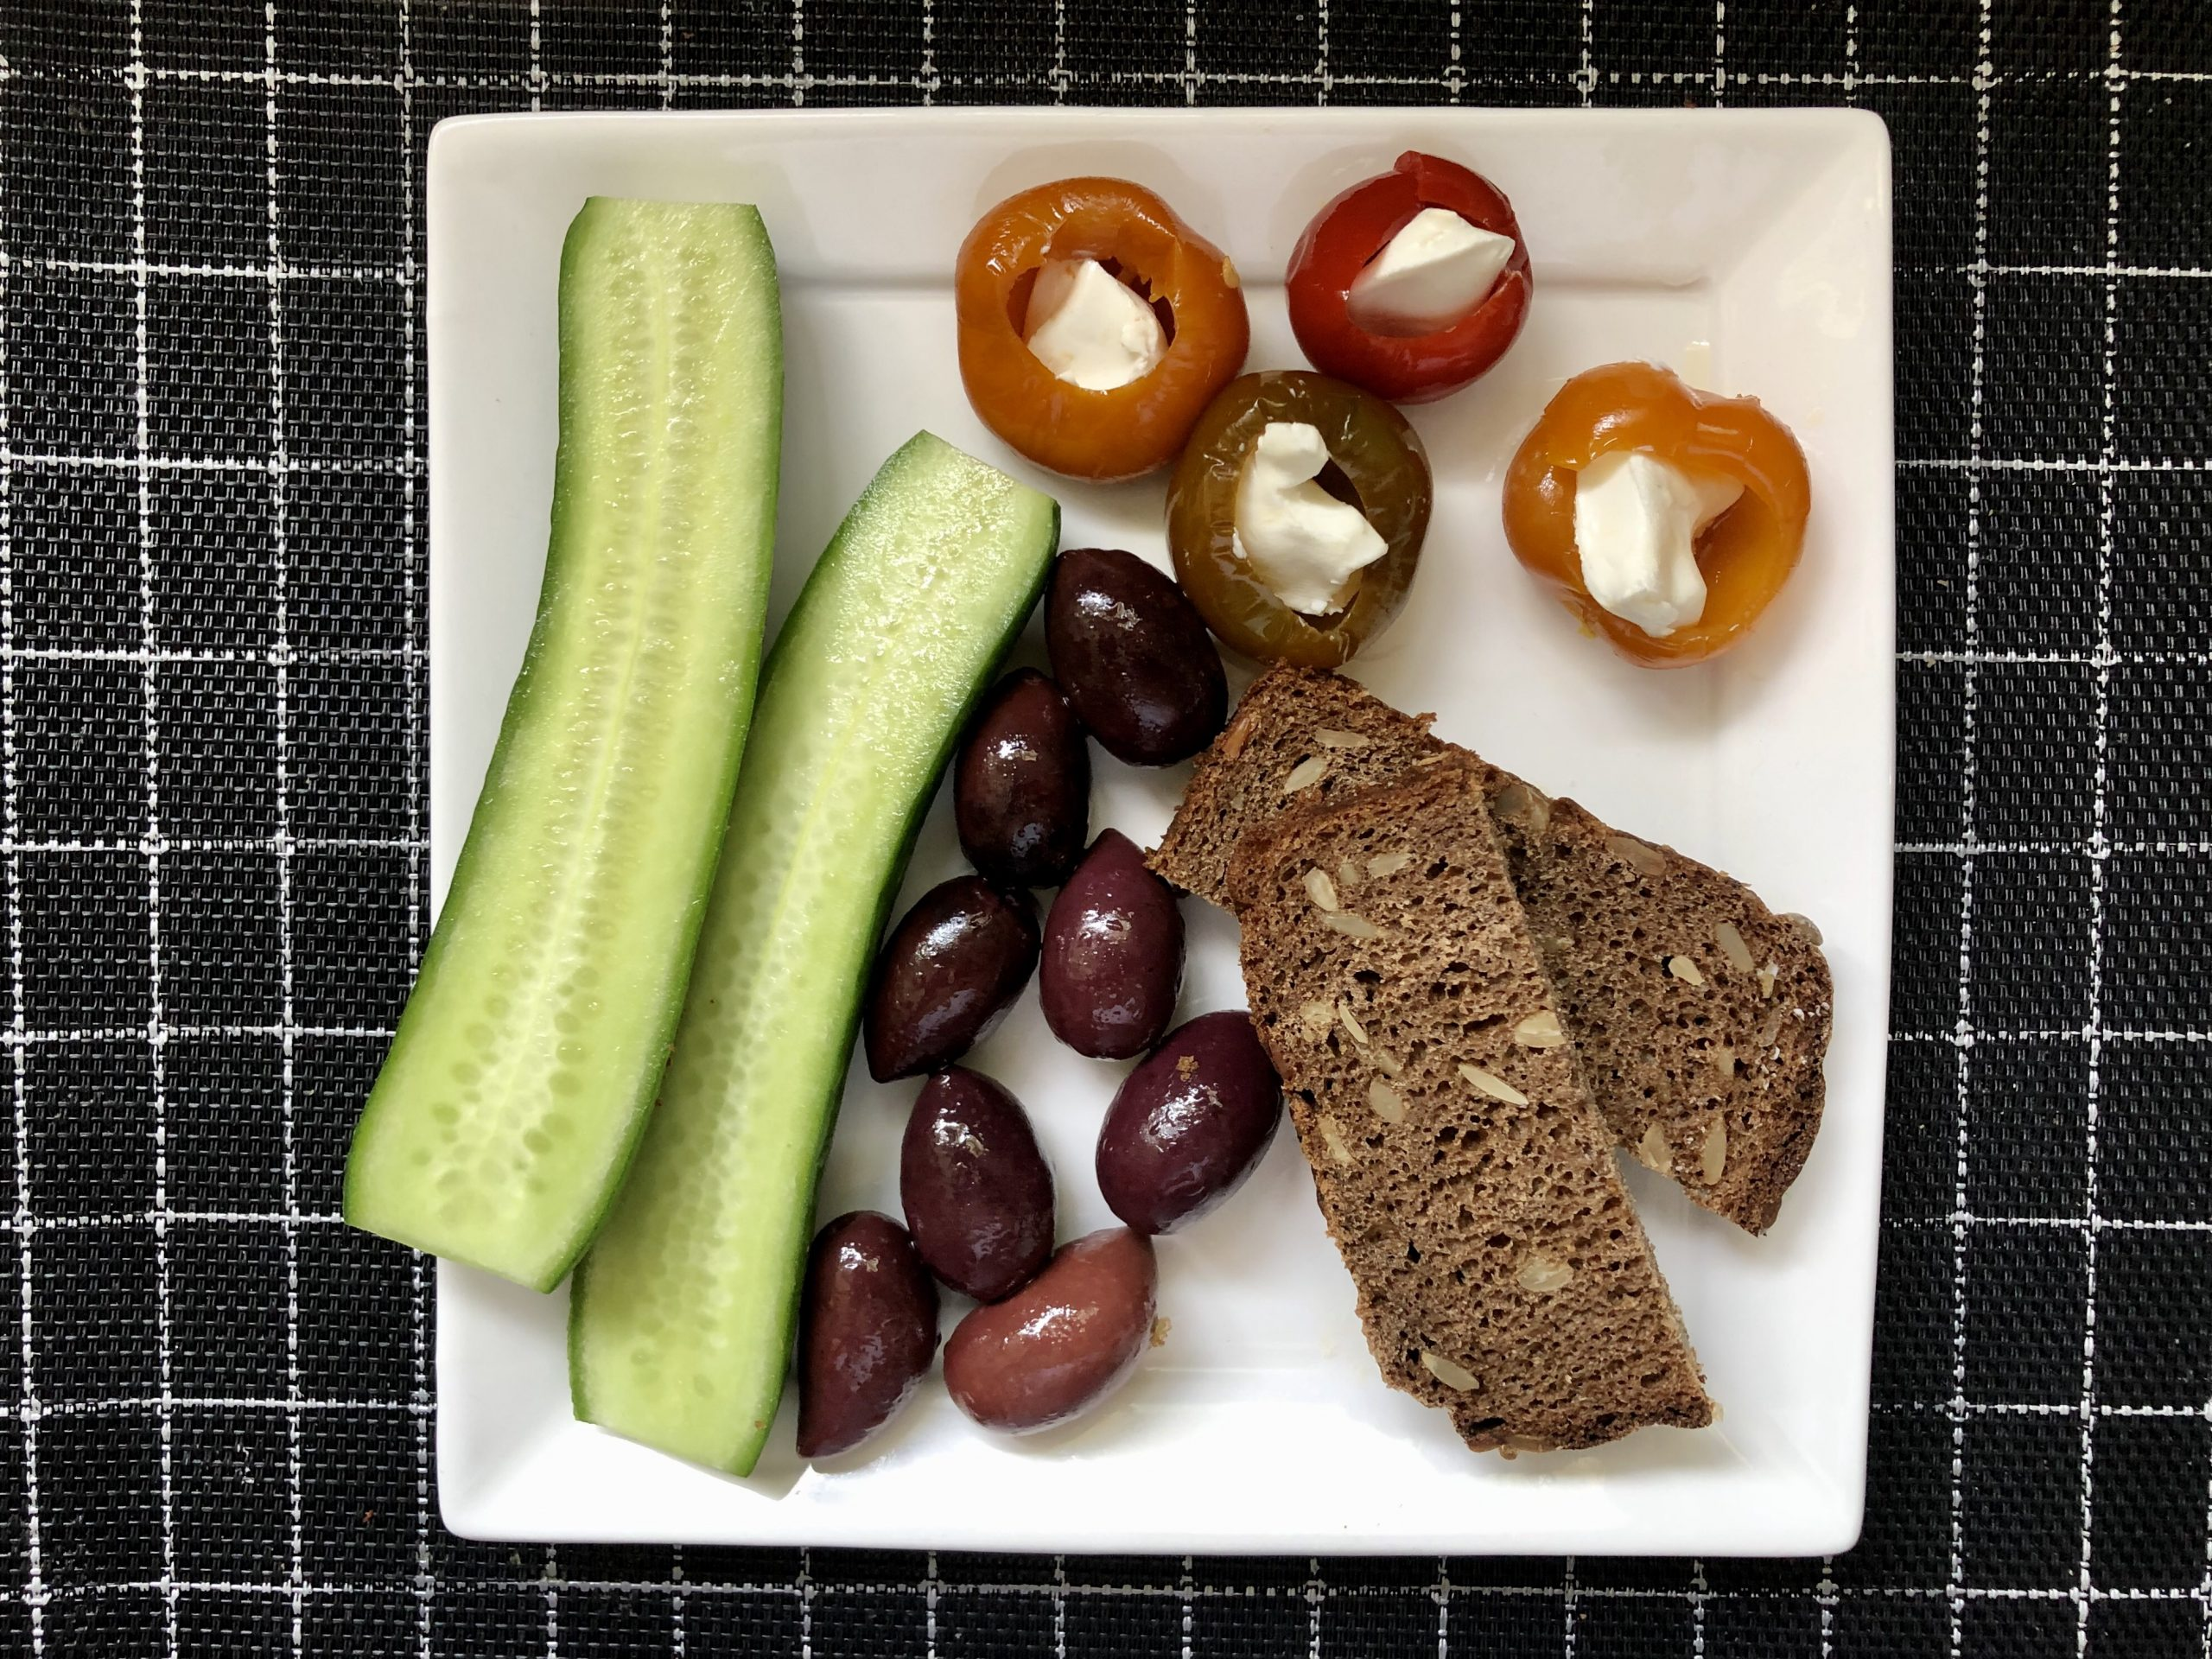 Mediterranean breakfast: marinated peppers stuffed with goat cheese, kalamata olives, cucumber and rye bread